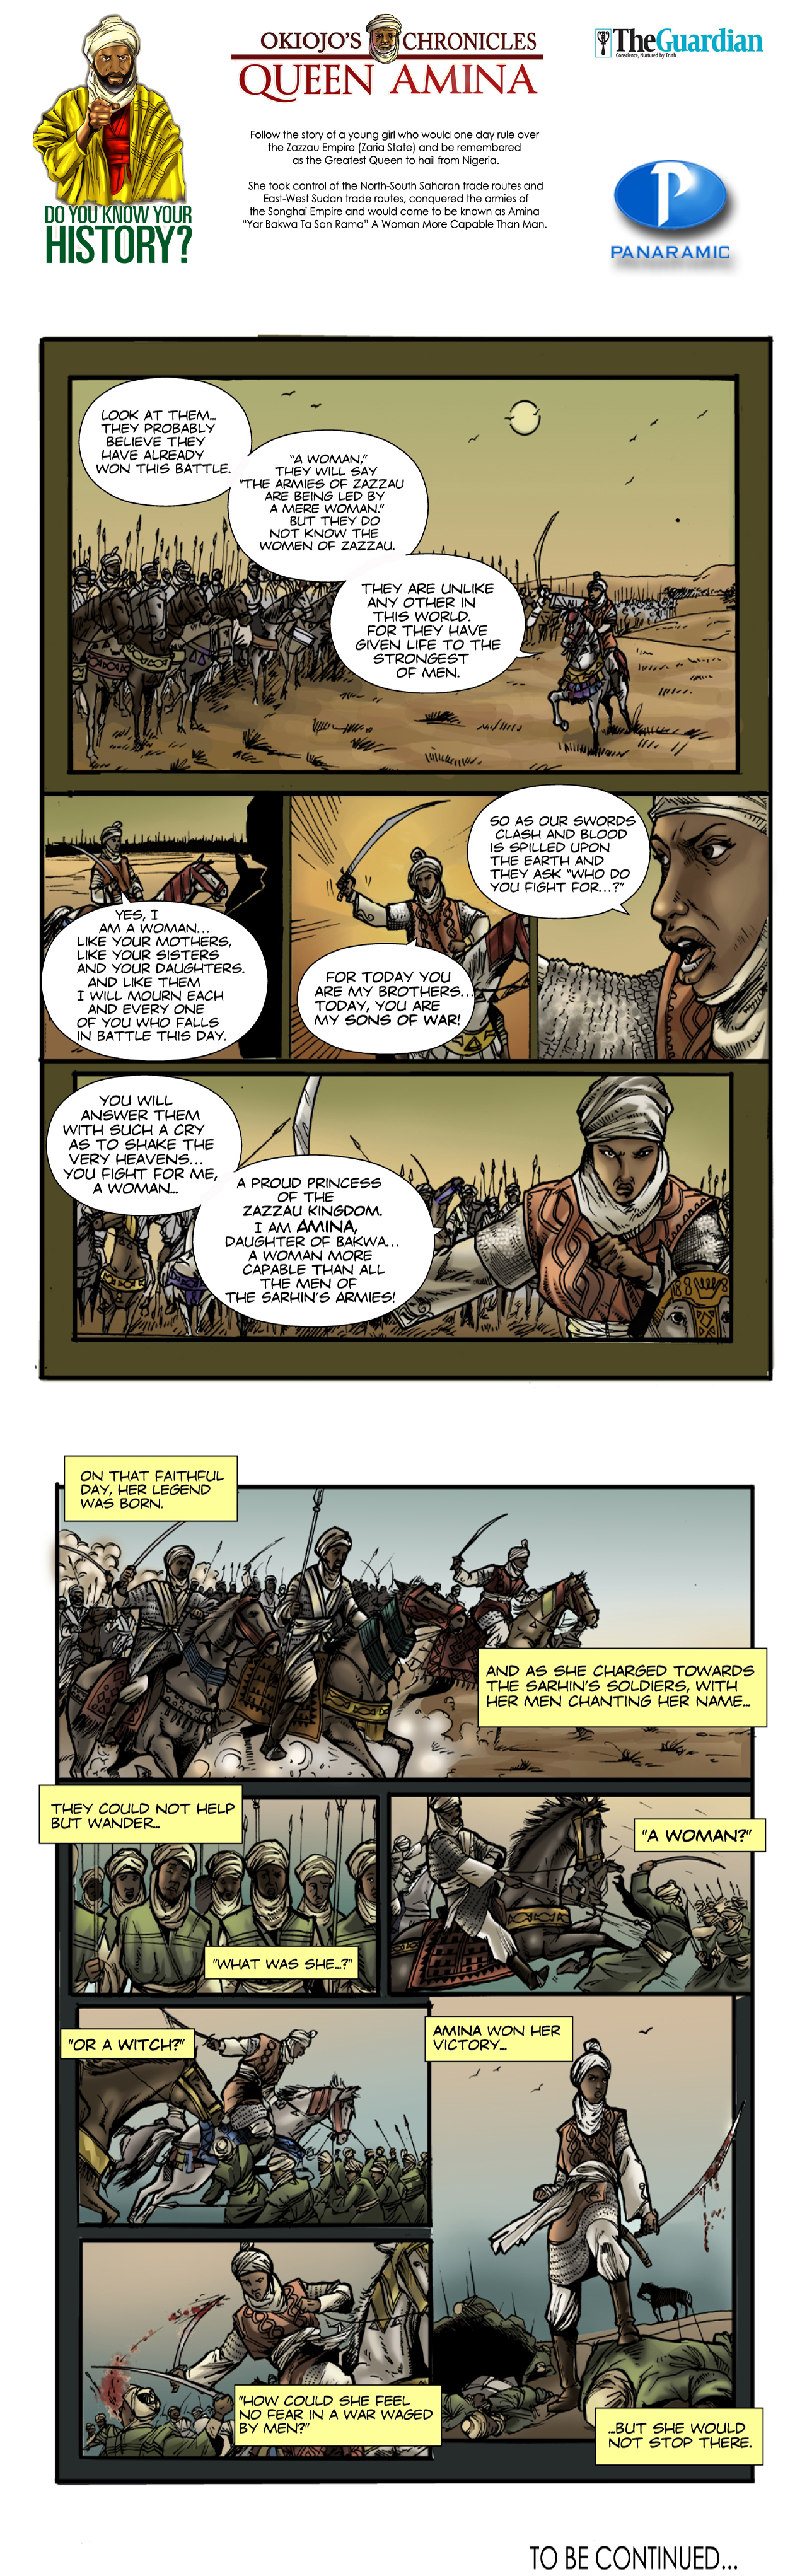 queen-amina-part-ii-6